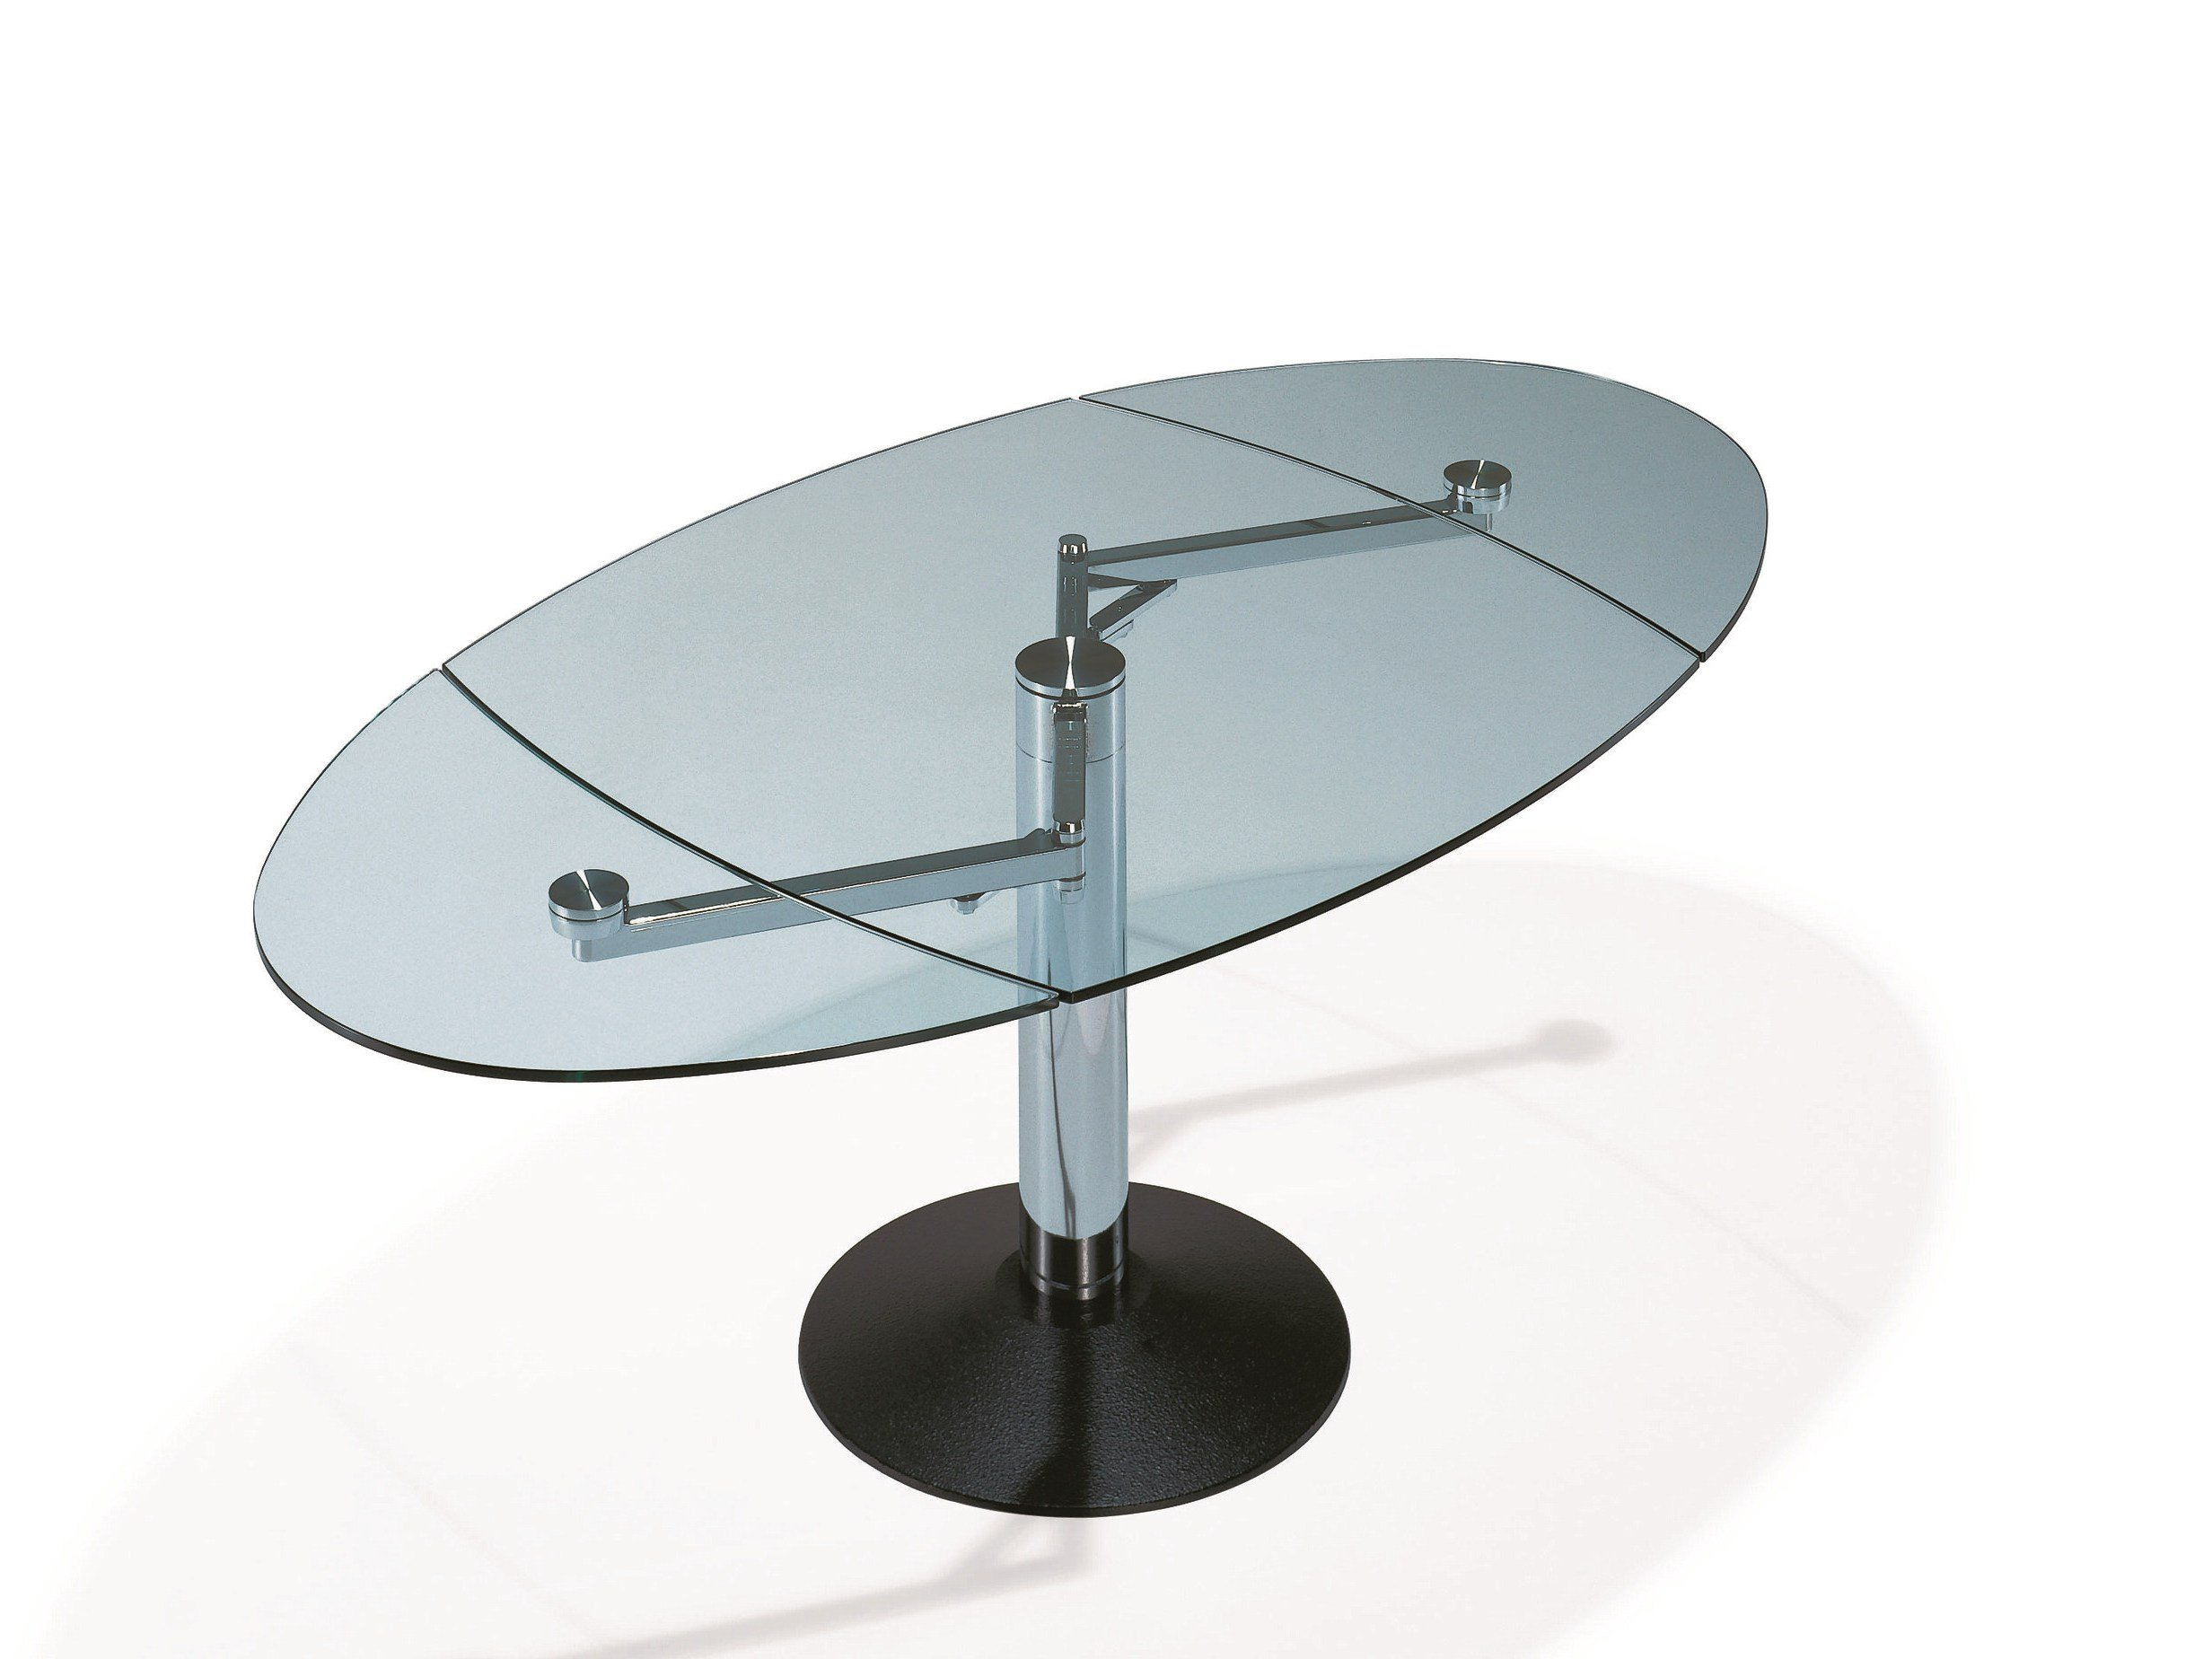 Titan glass table by draenert design georg appeltshauser for Tavolo ovale in vetro allungabile